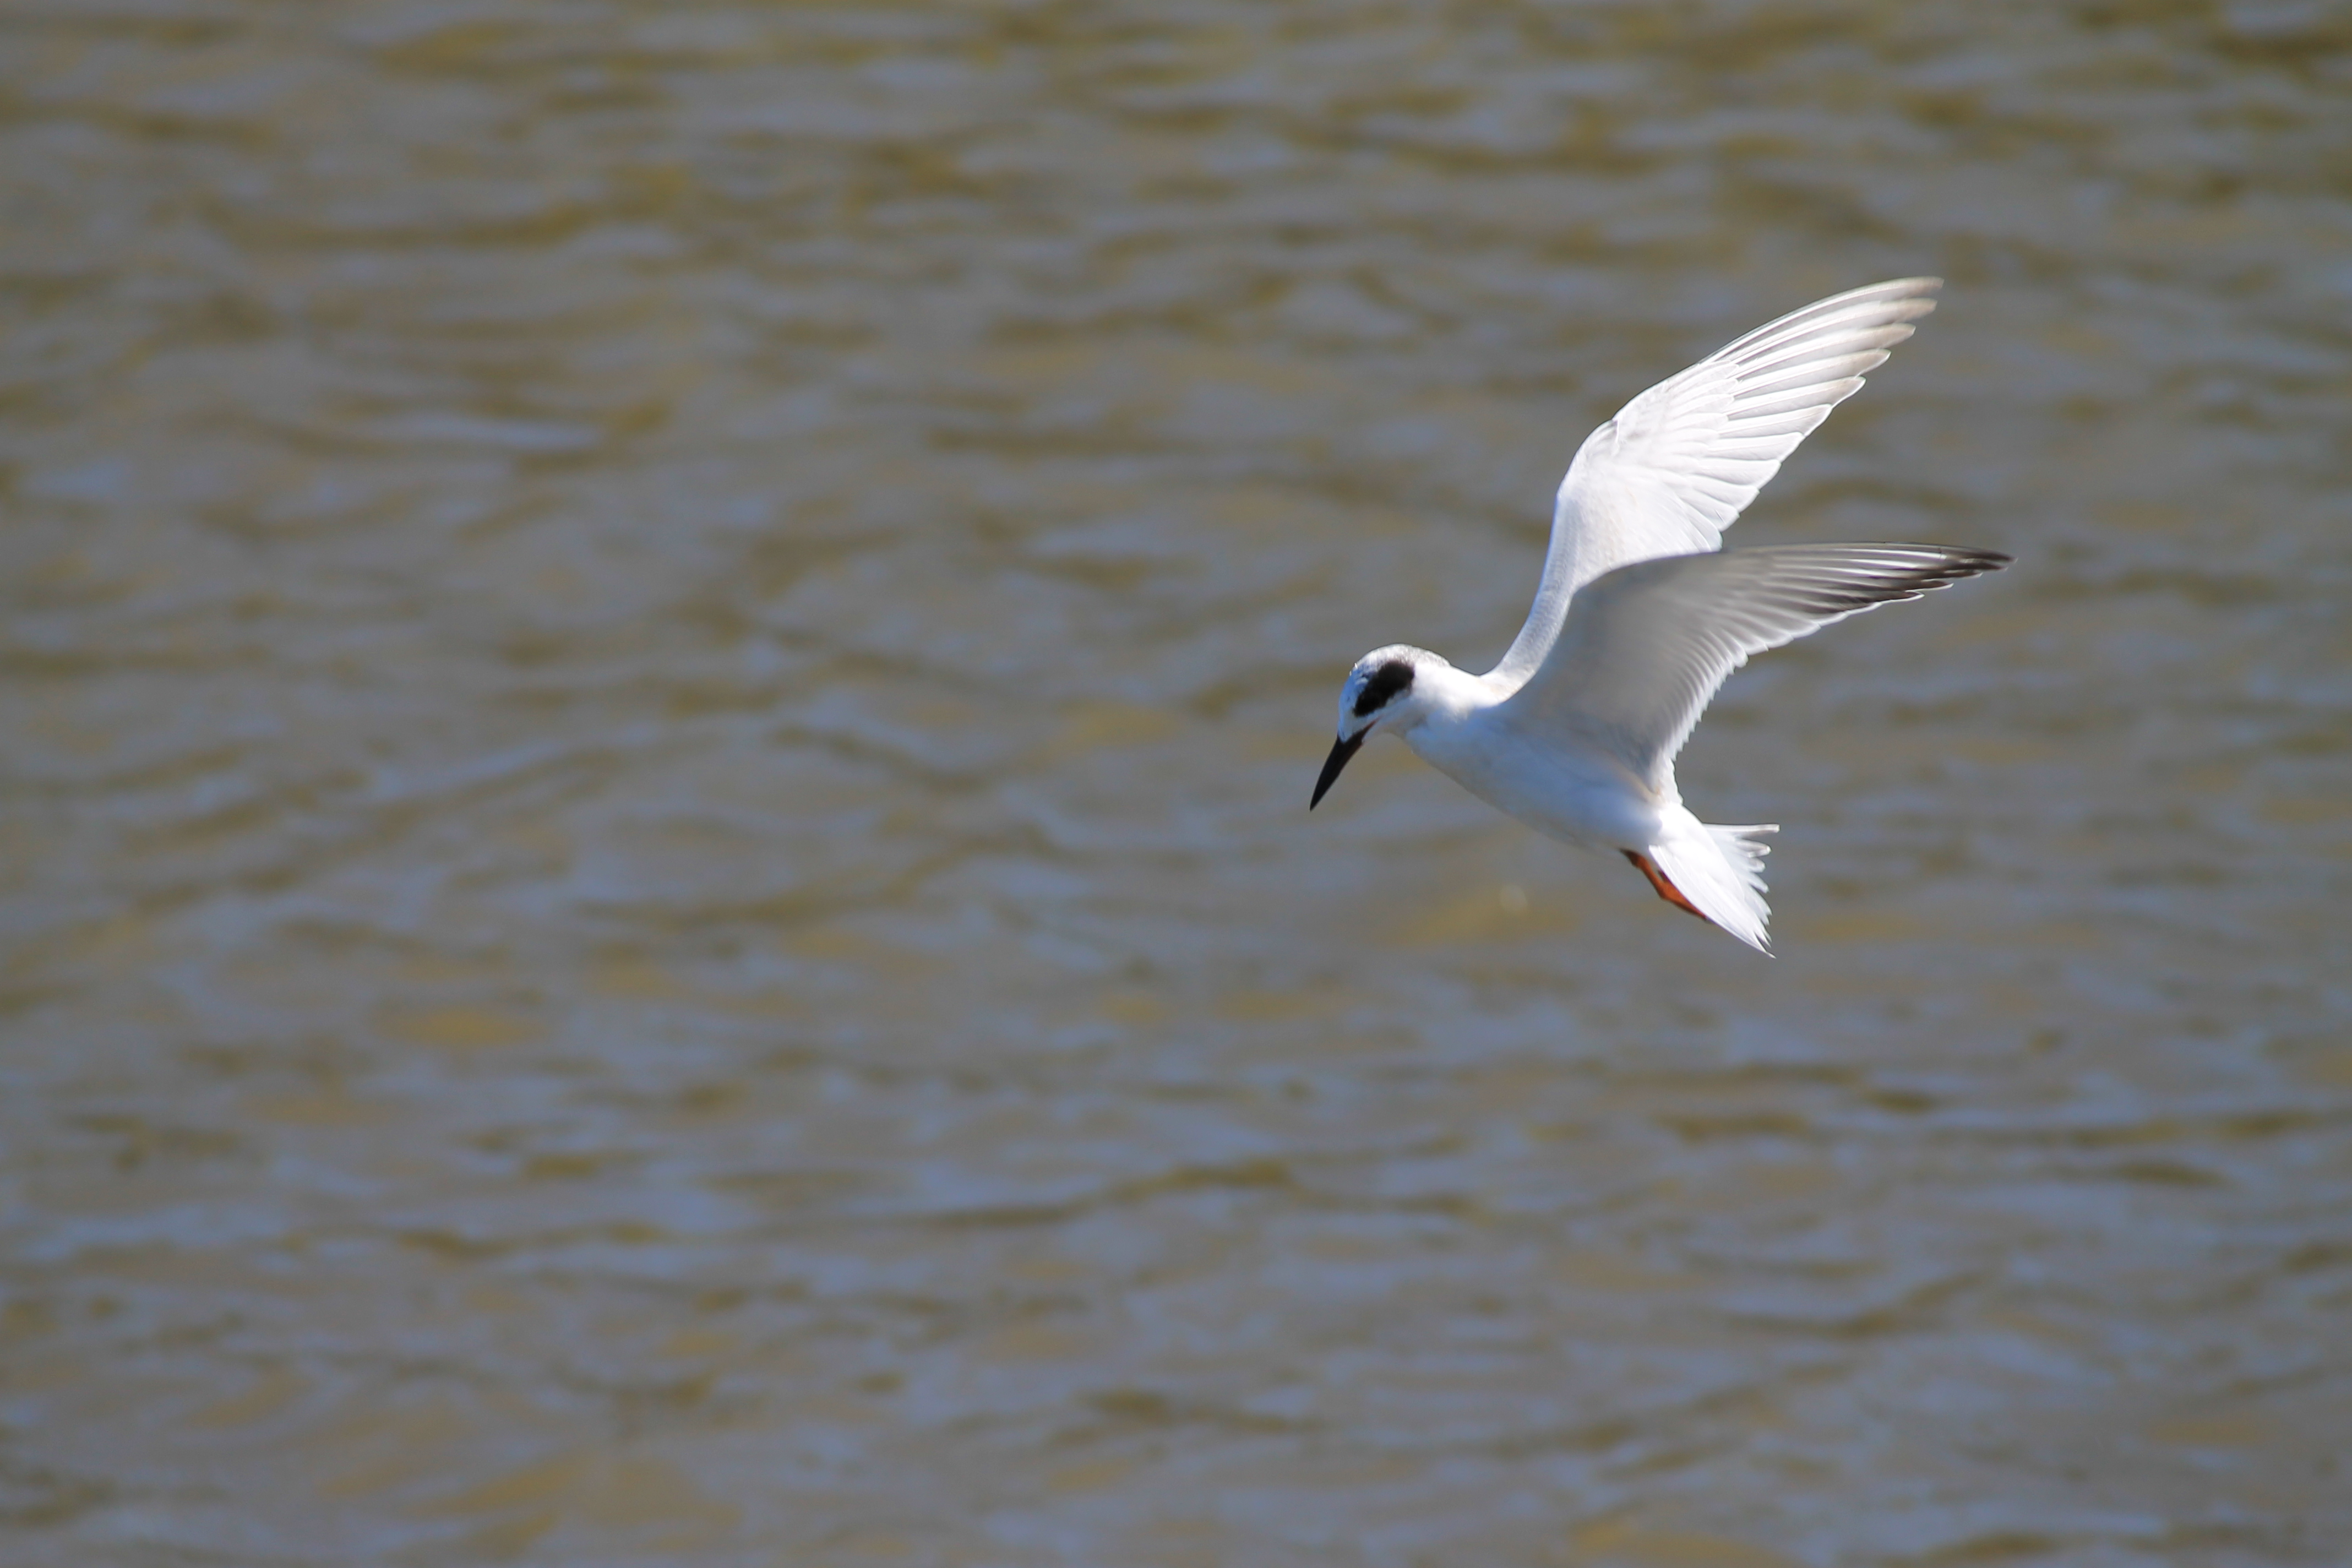 Forster's_Tern_in_flight,_winter_plumage